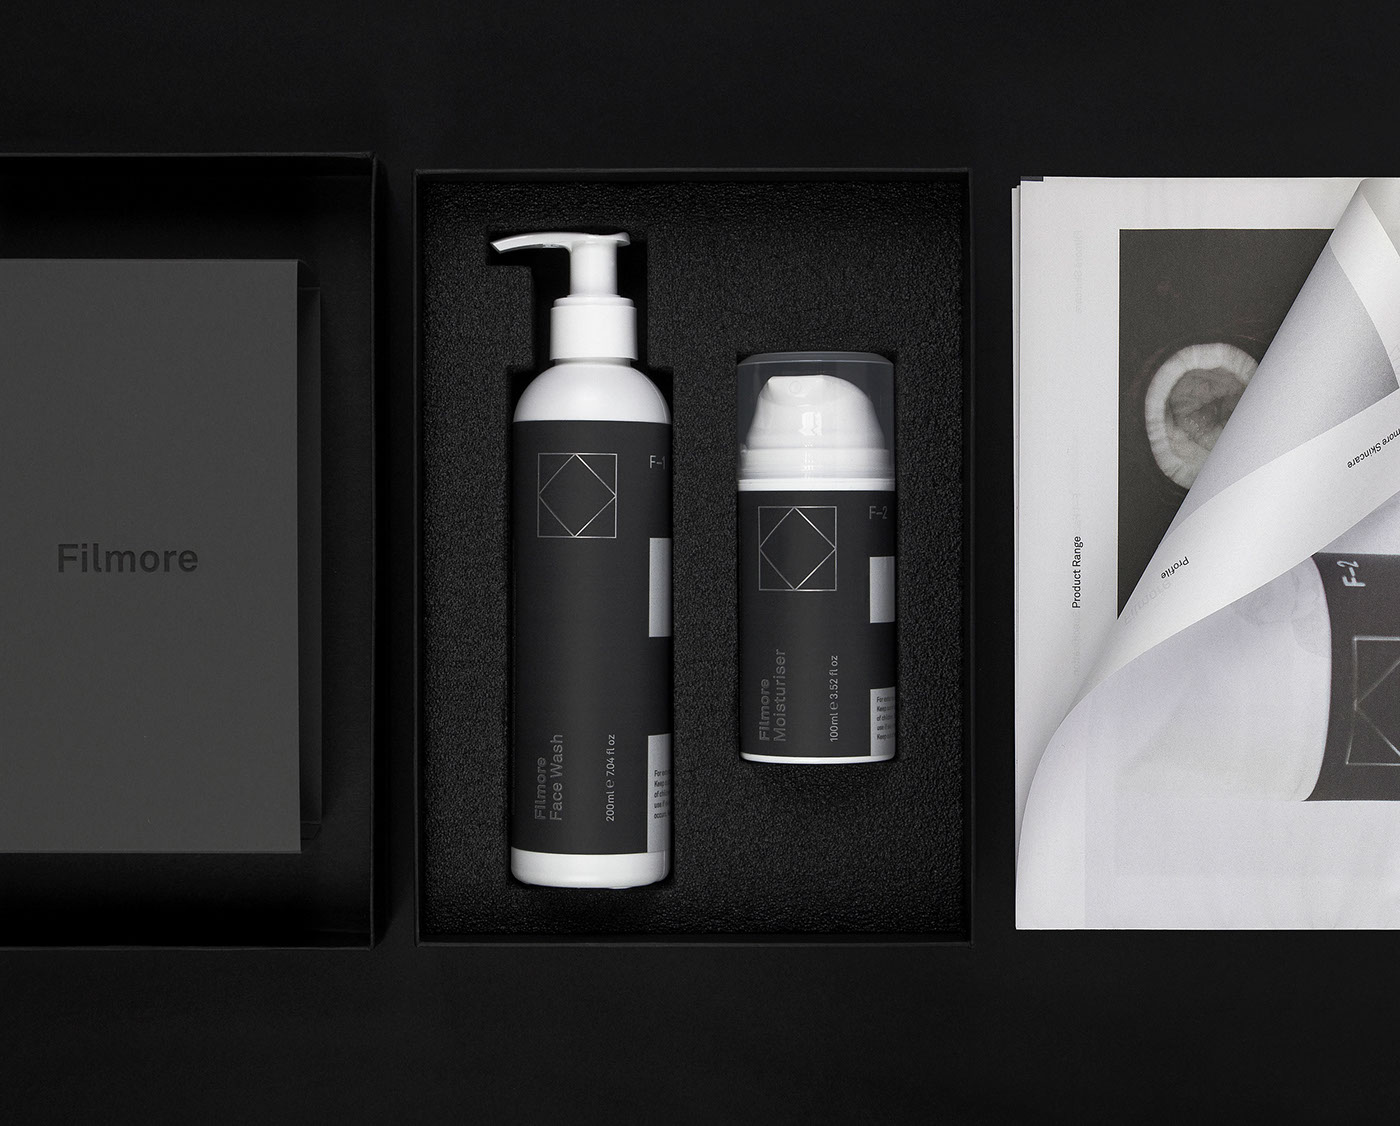 Filmore skincare Packaging grooming freytaganderson scotland glasgow beauty labels face wash